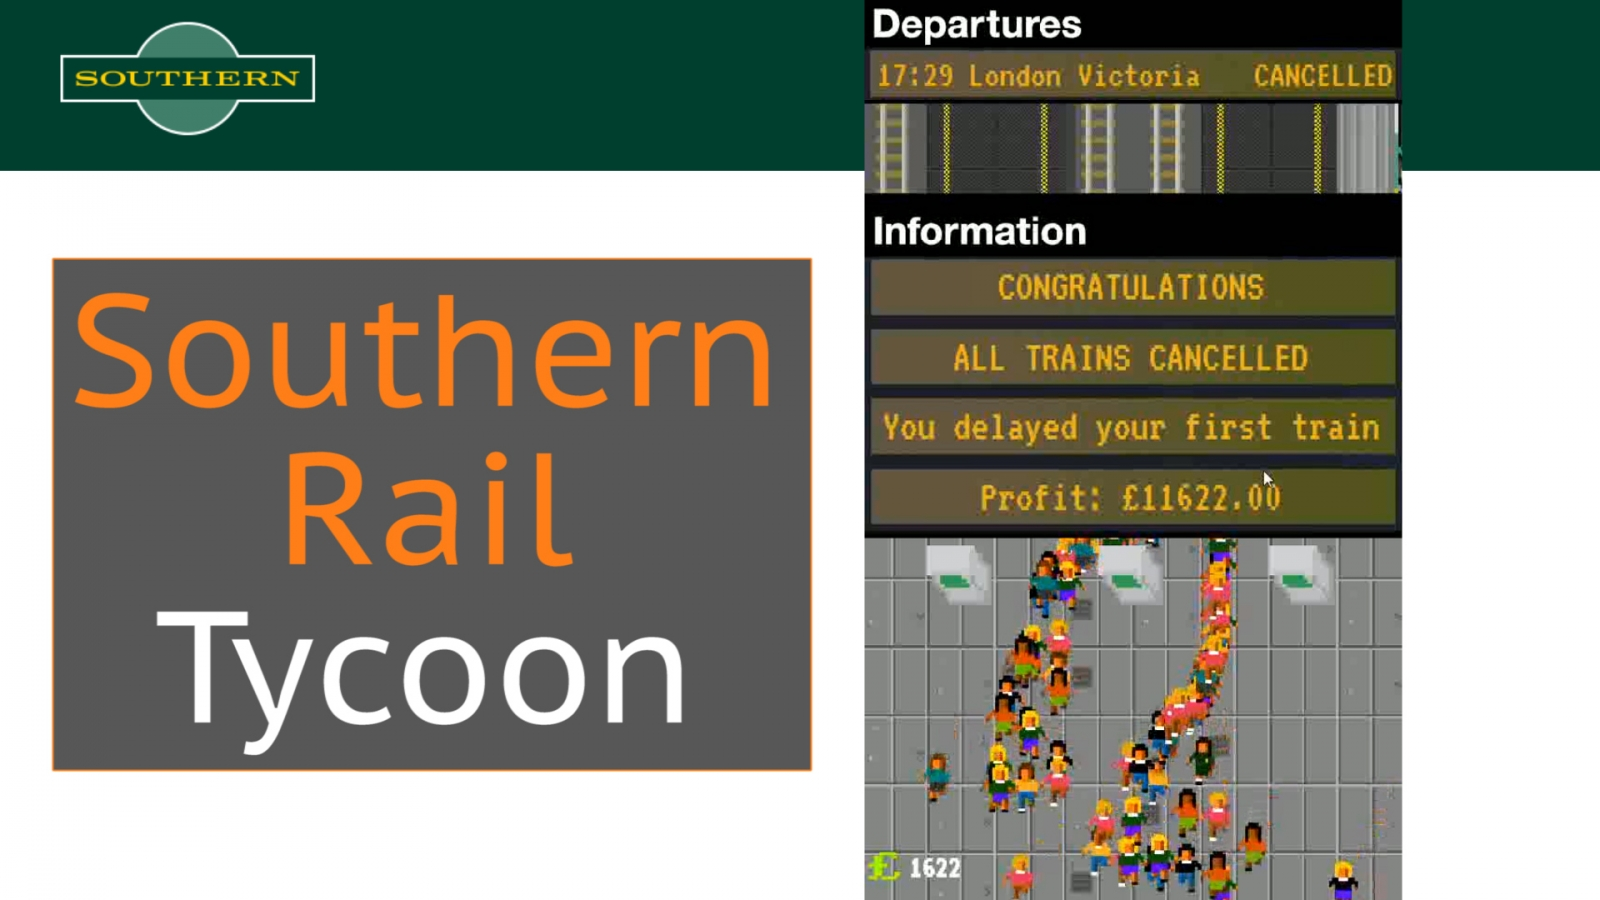 Southern Rail Tycoon